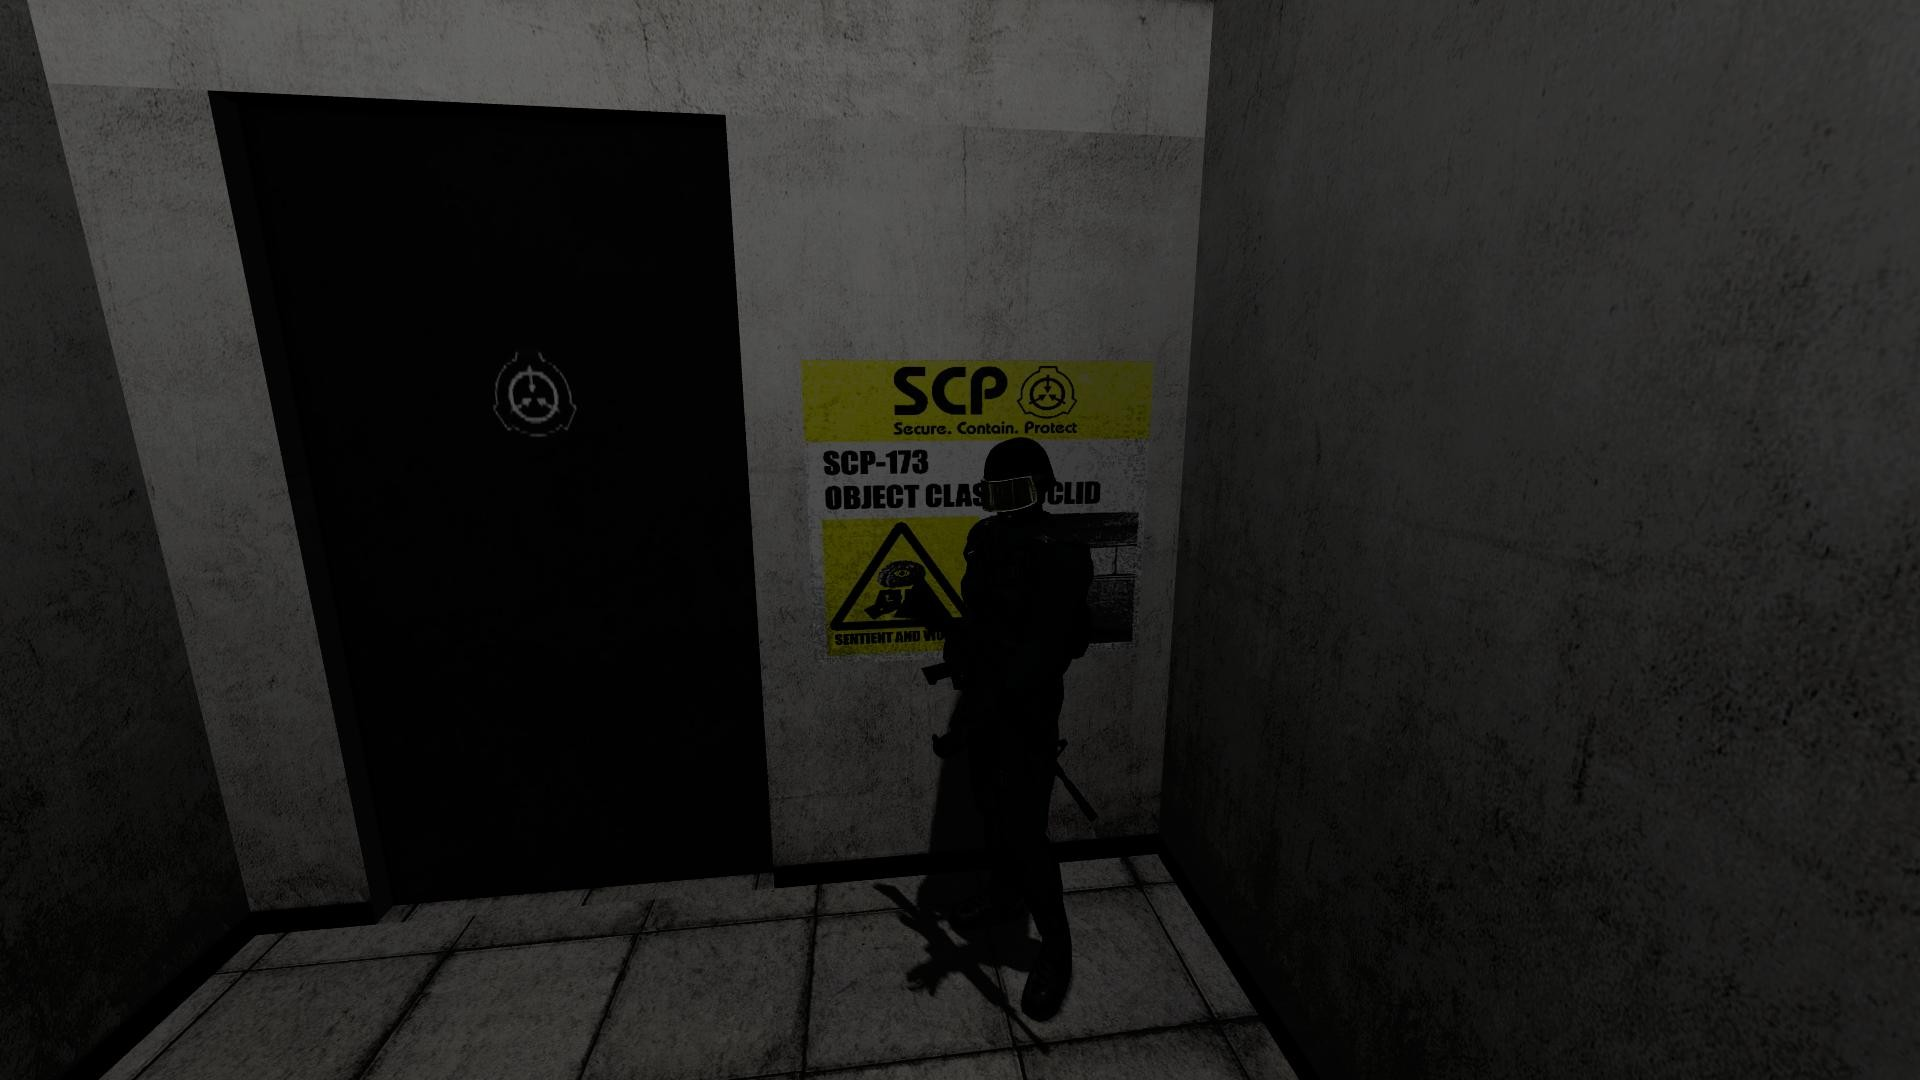 CS:S] SCP Containment Breach+Youtube [GameBanana] [Projects]